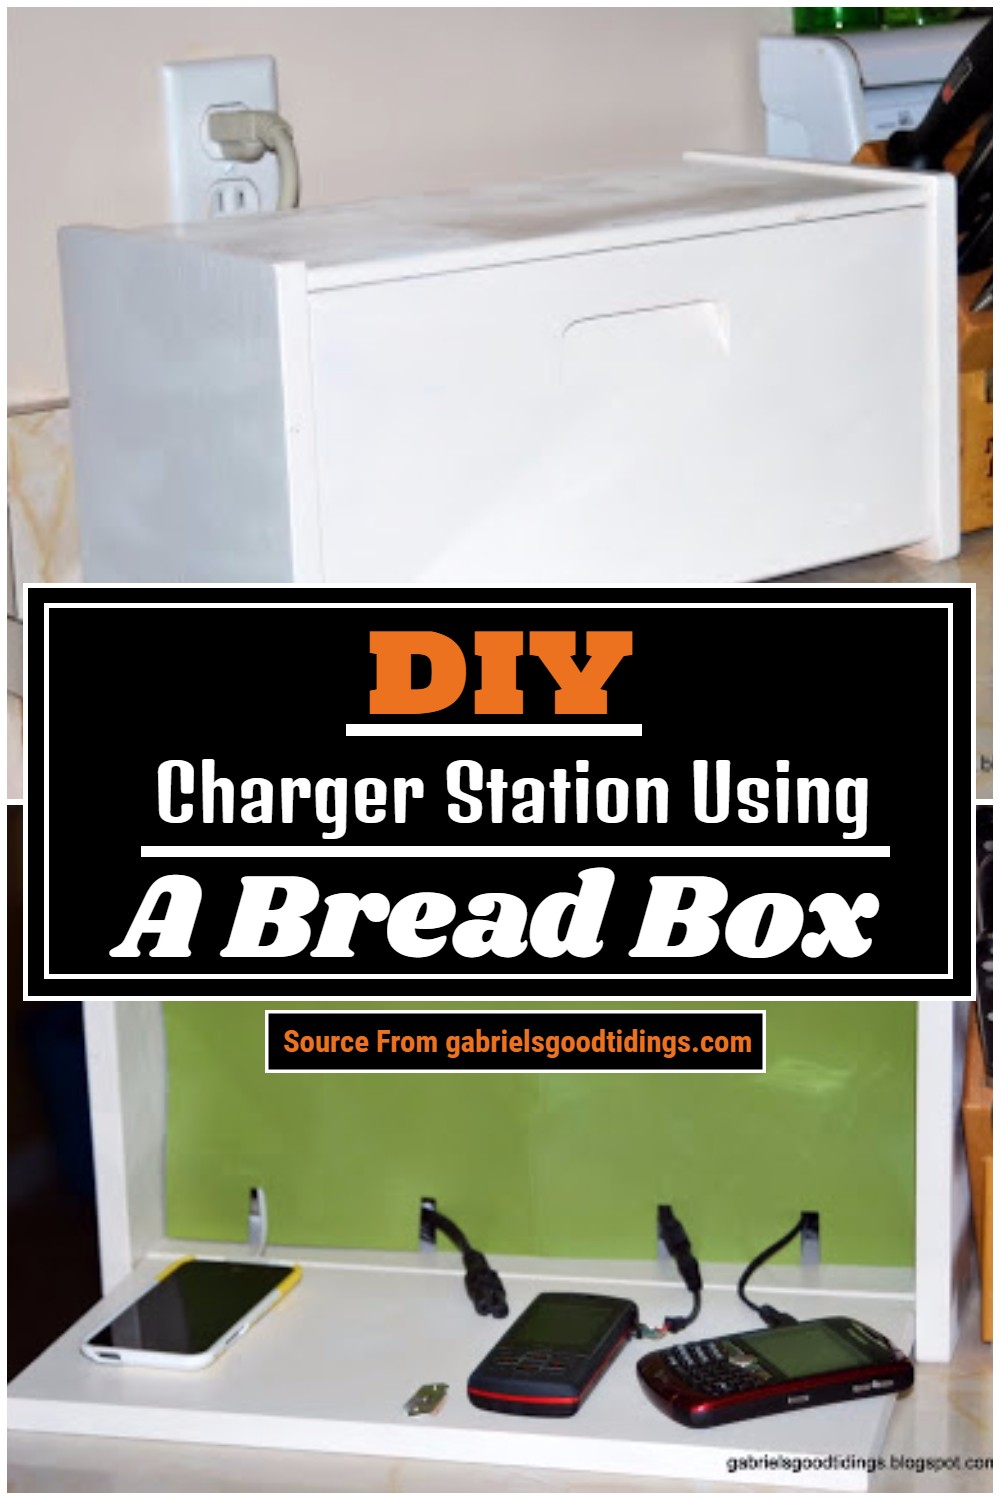 DIY Charger Station Using A Bread Box